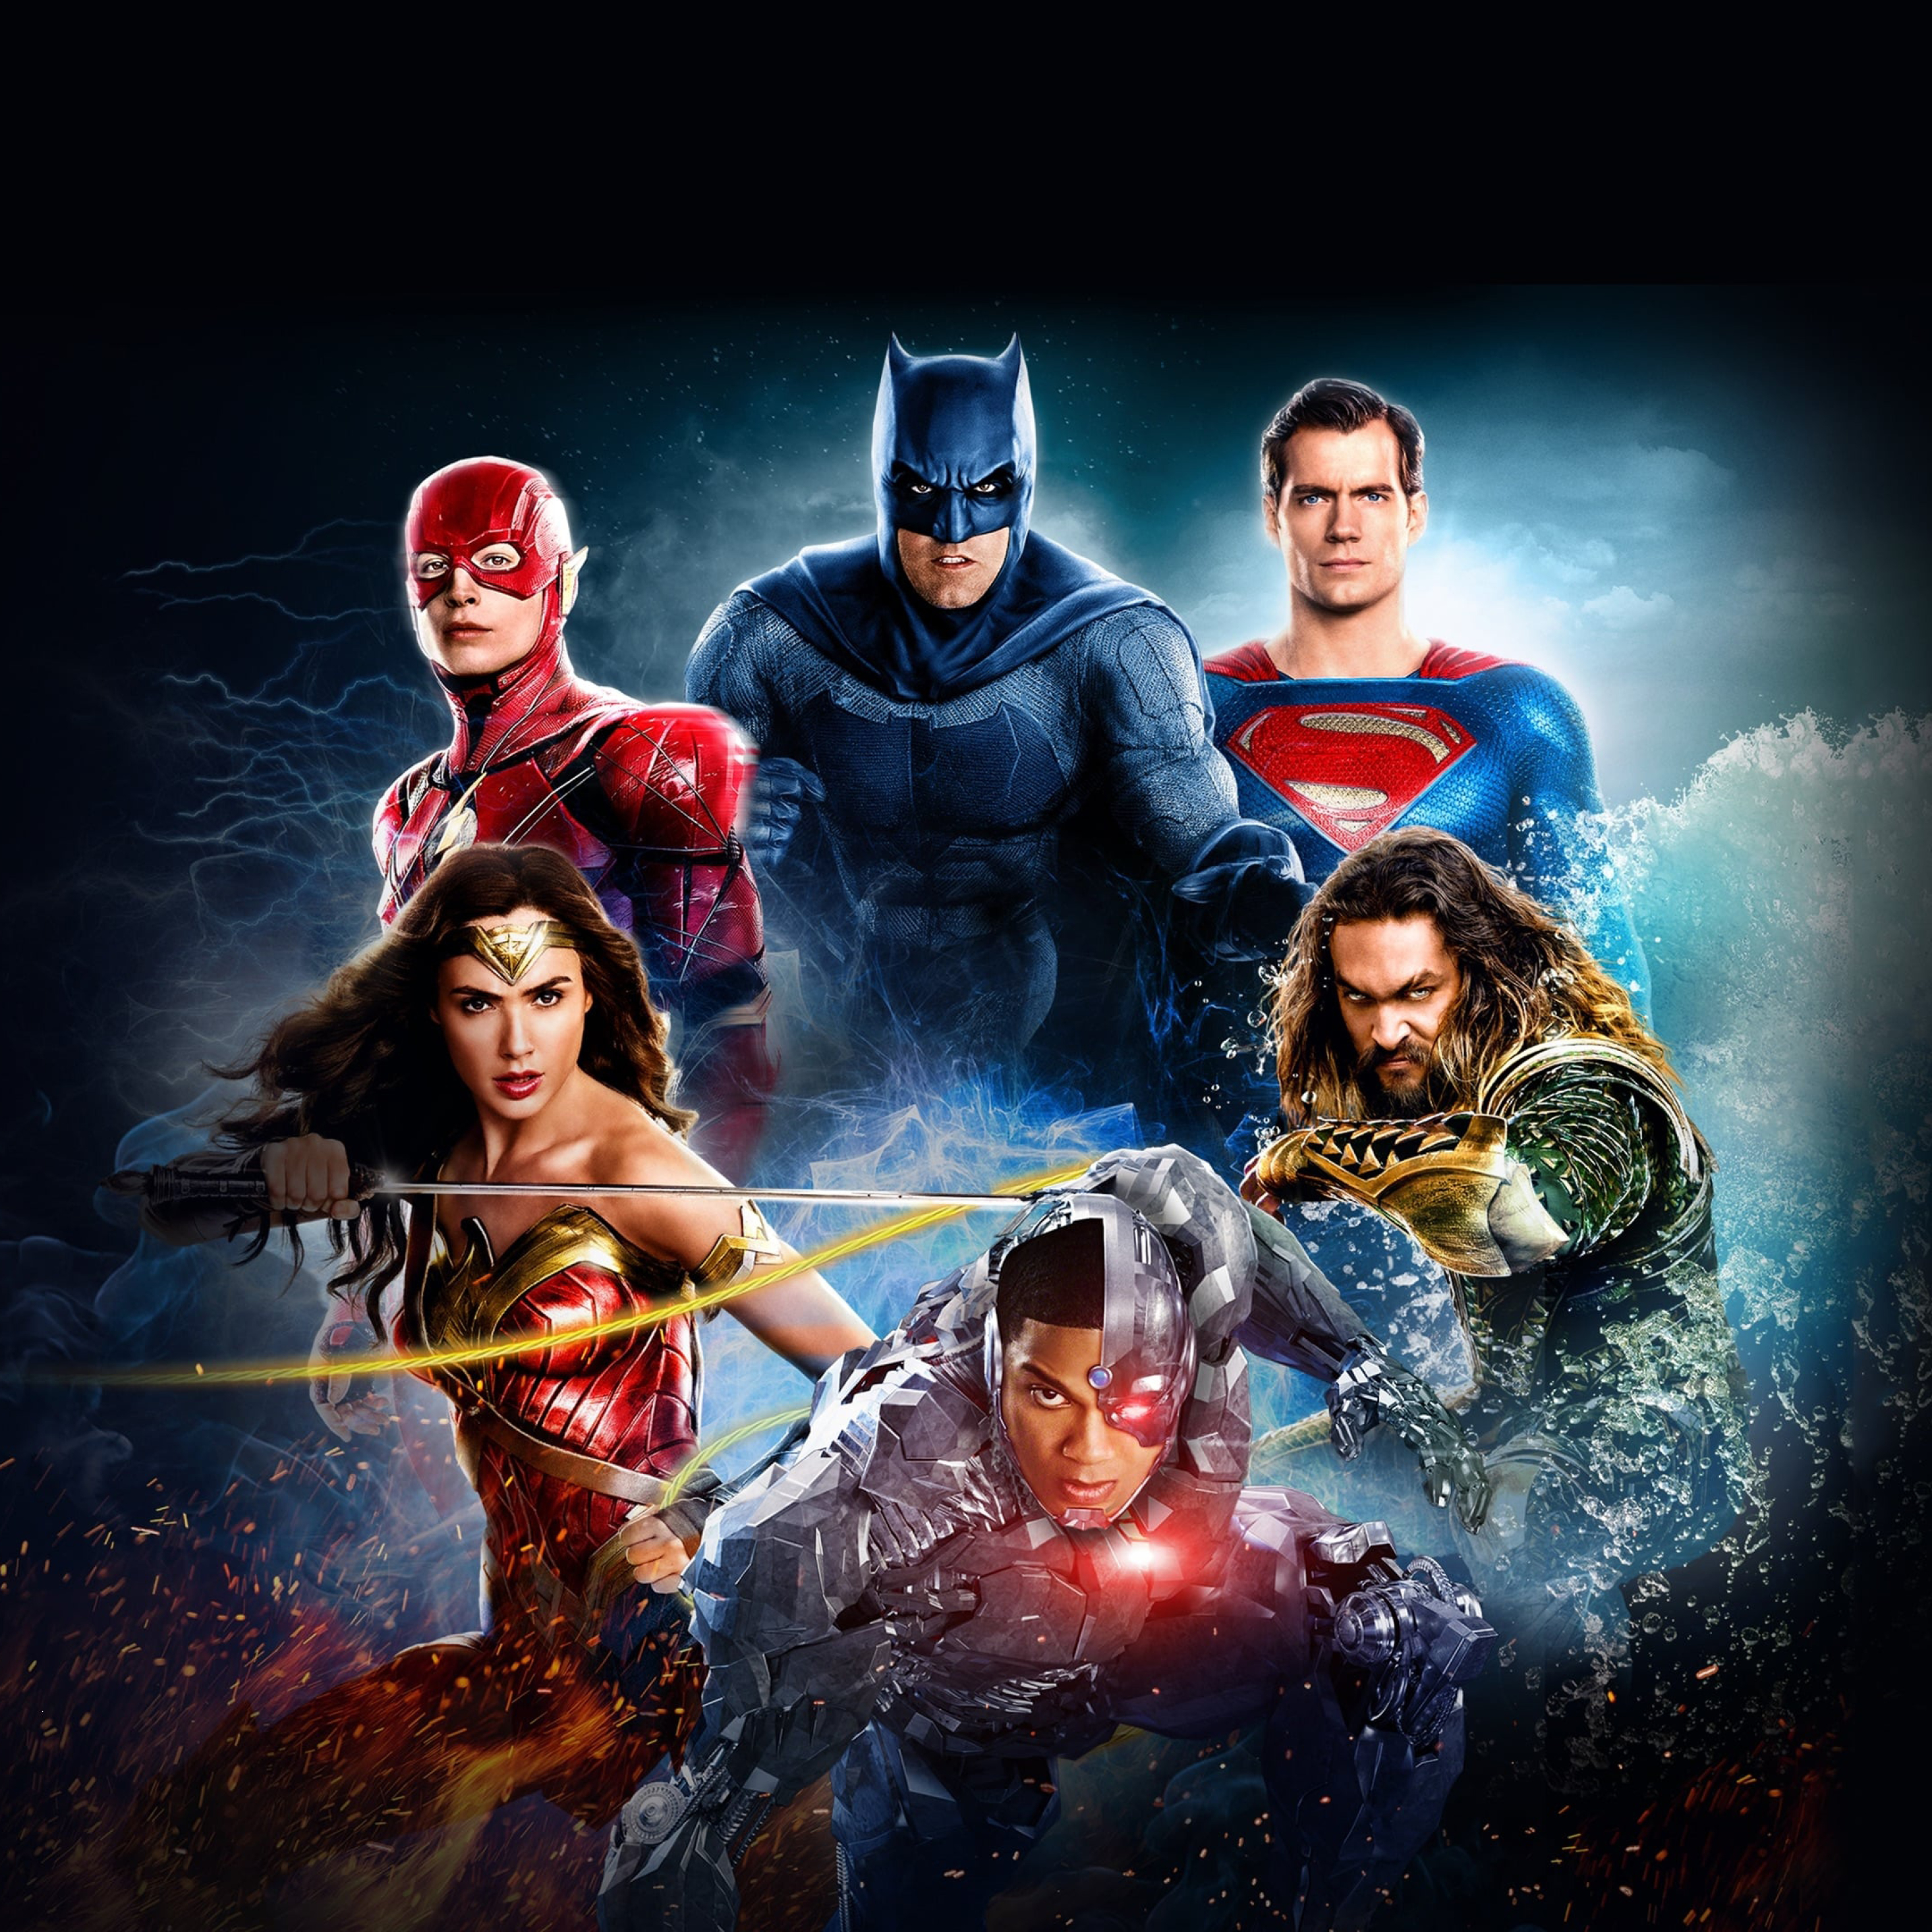 2932x2932 HBO Justice League Synder Cut 2021 Ipad Pro ...